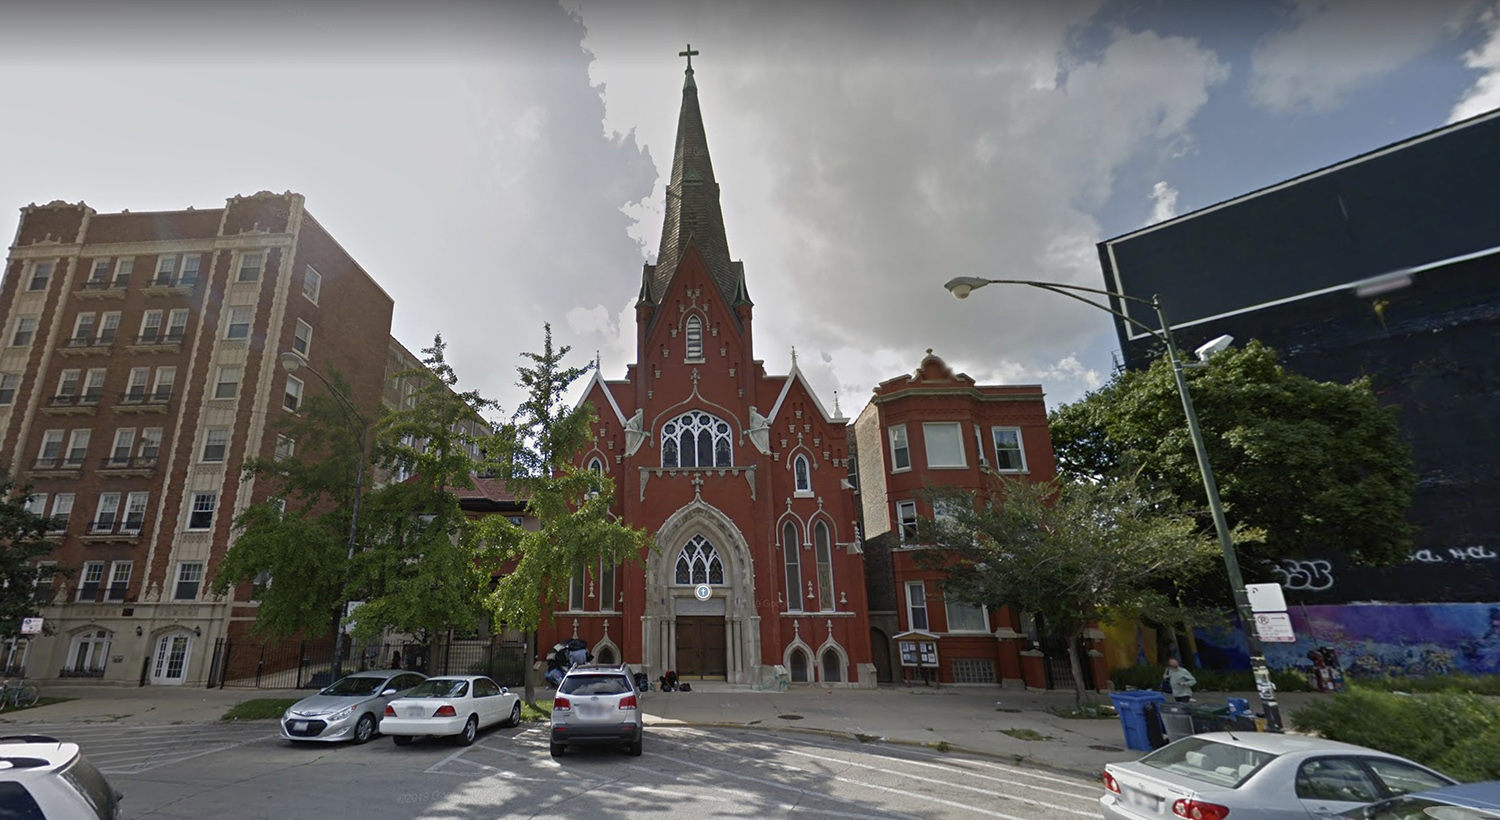 Norwegian Lutheran Memorial Church of Chicago at 2614 N Kedzie Avenue via Google Maps